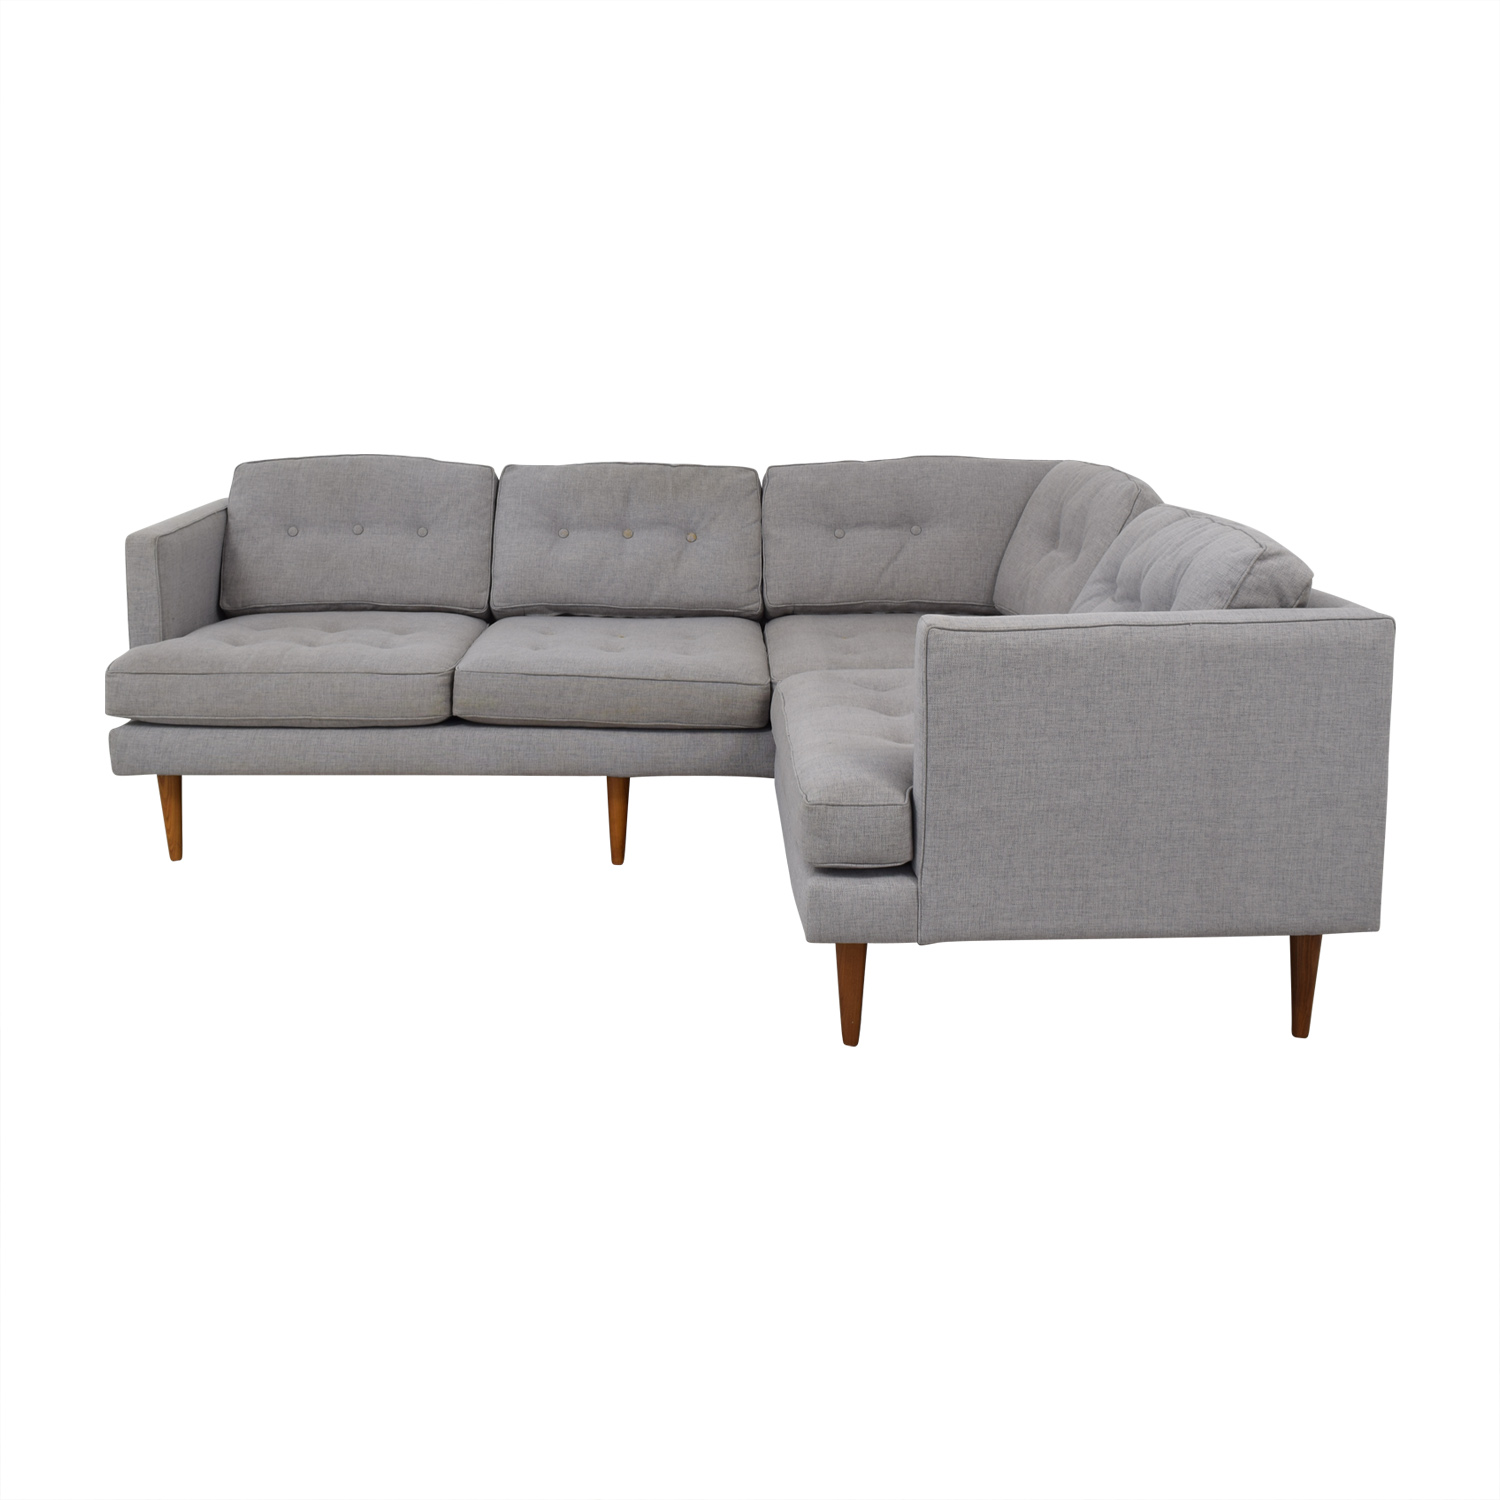 buy West Elm Peggy Sectional Sofa West Elm Sofas